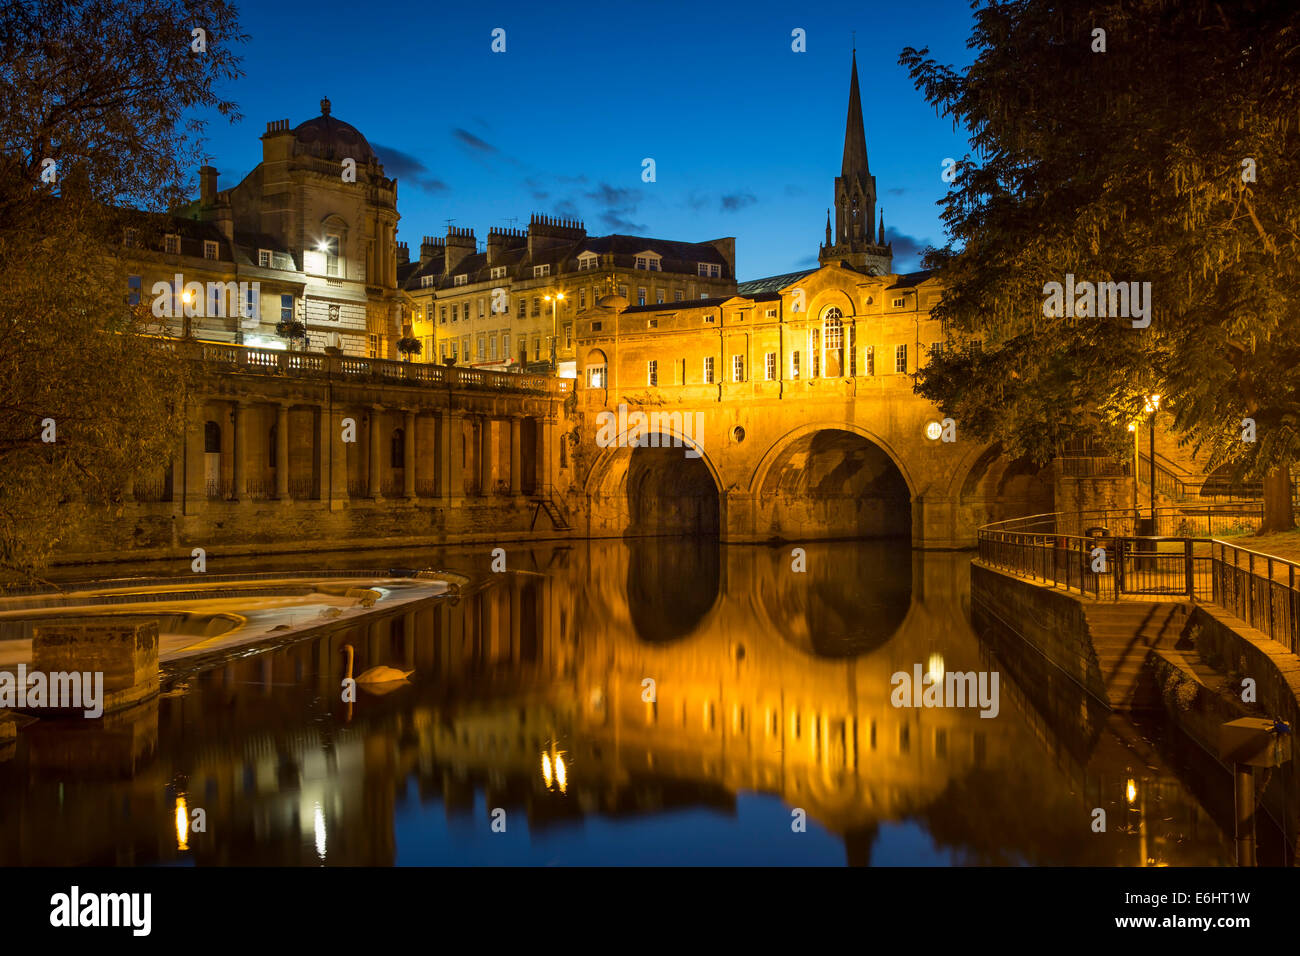 Pulteney Bridge over River Avon, Bath, Somerset, England - Stock Image